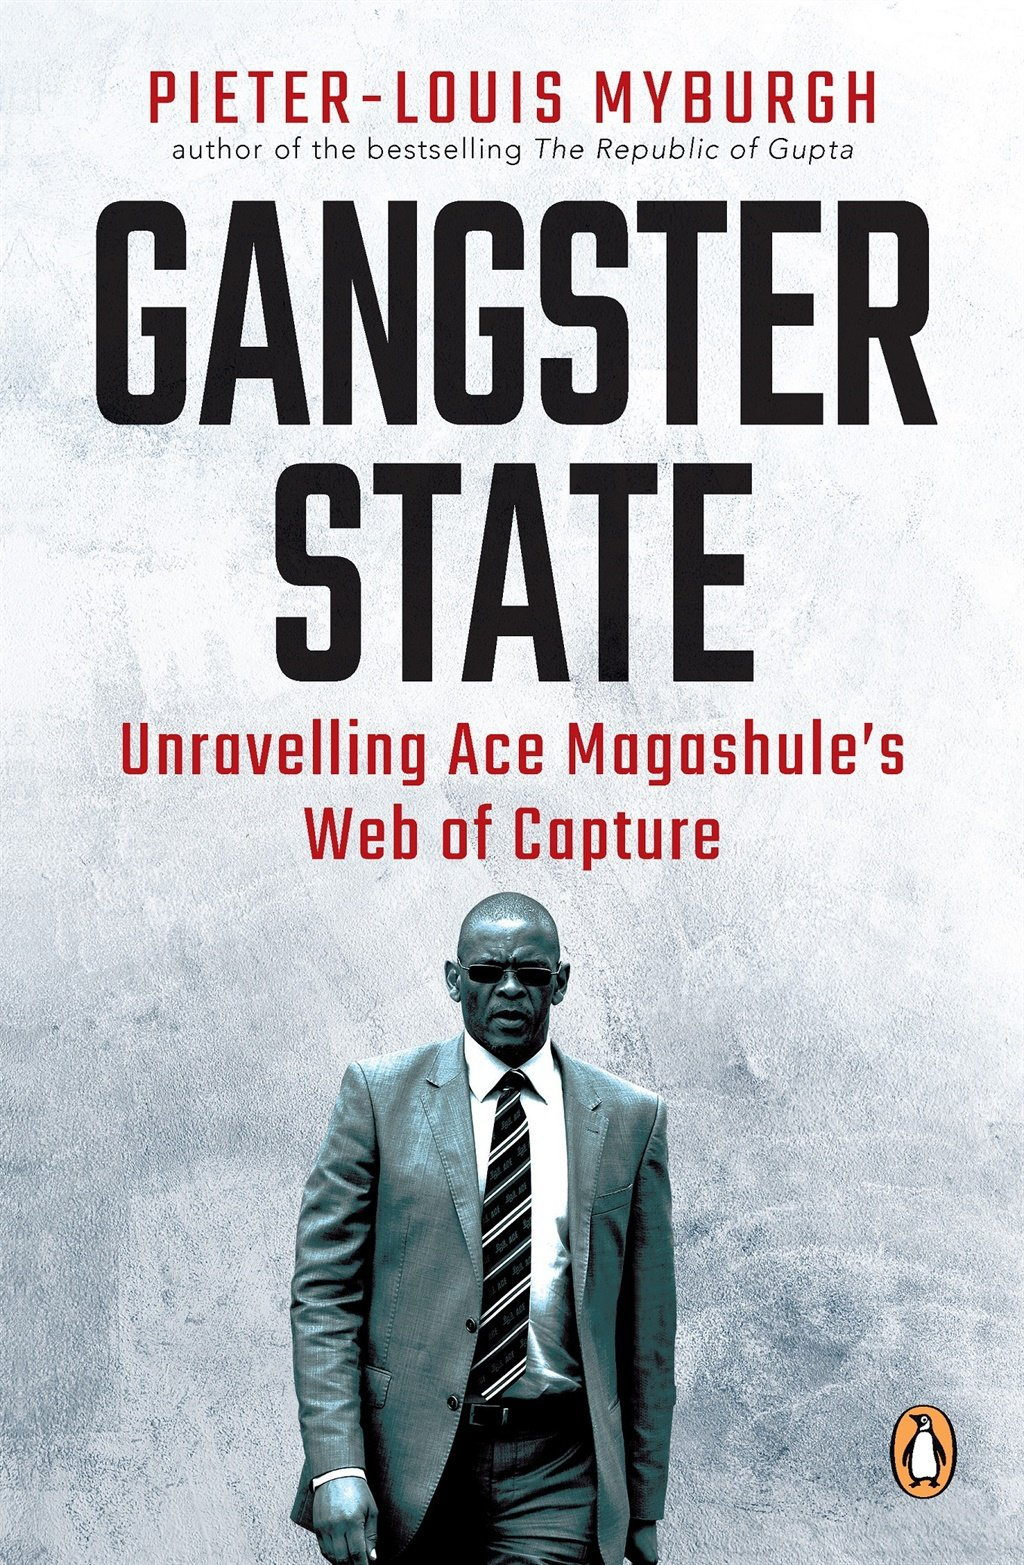 Gangster State: Unravelling Ace Magashule's Web of Capture by Pieter-Louis Myburgh, published by Penguin Random House.